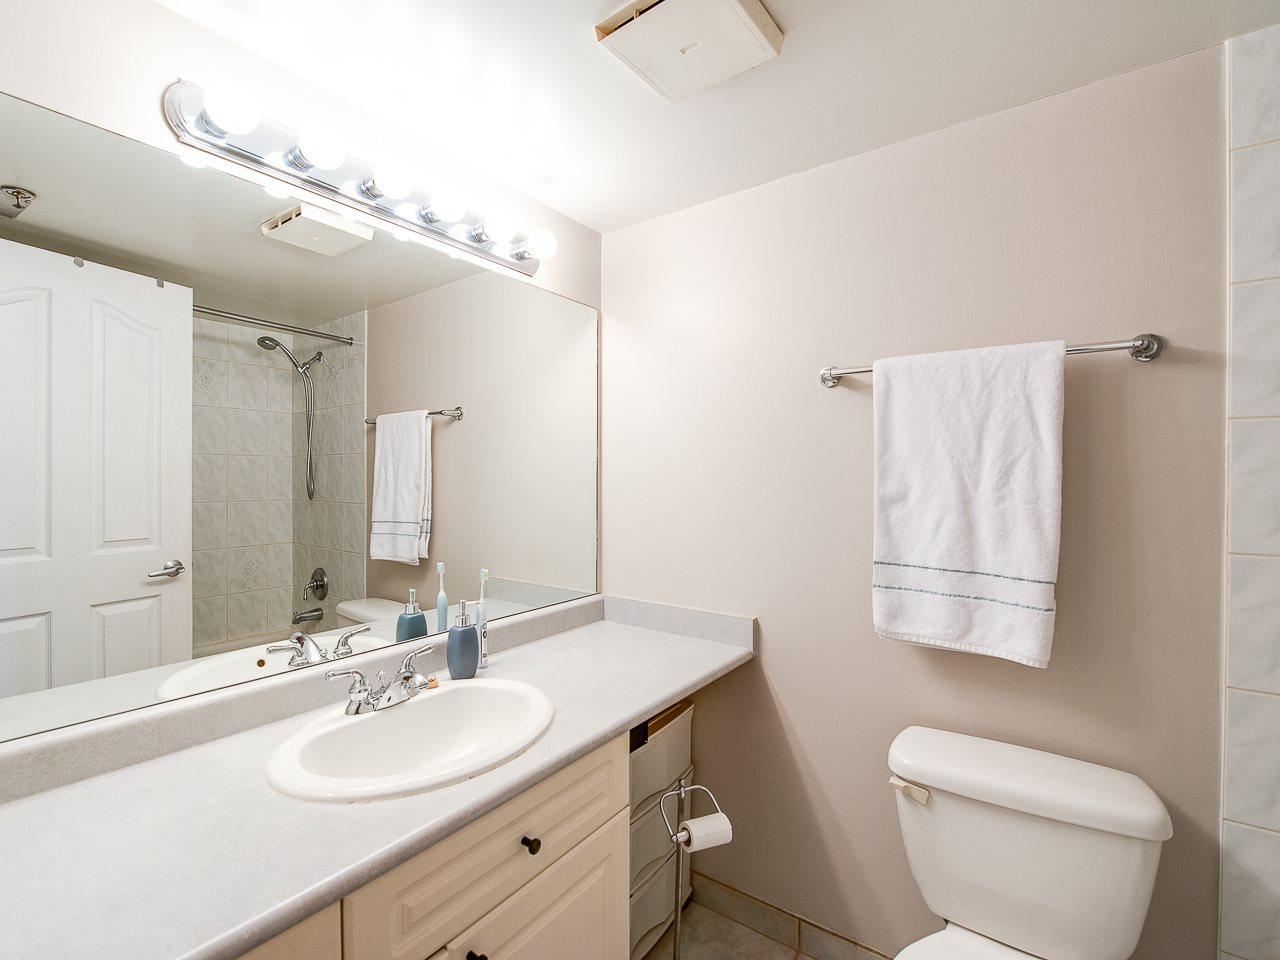 Photo 13: 304 2025 STEPHENS STREET in Vancouver: Kitsilano Condo for sale (Vancouver West)  : MLS® # R2158946